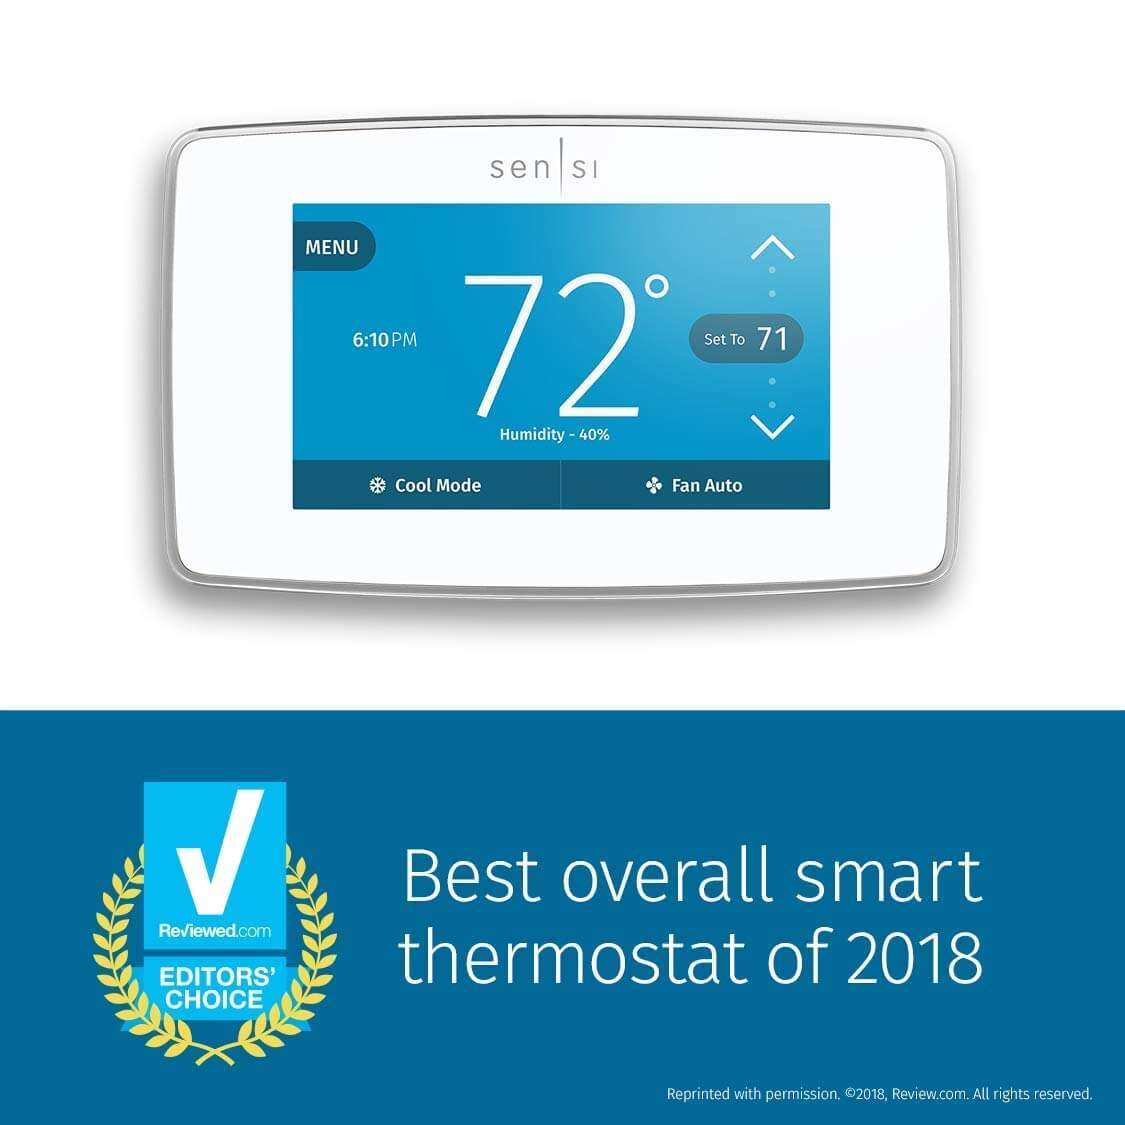 sensi thermostat review